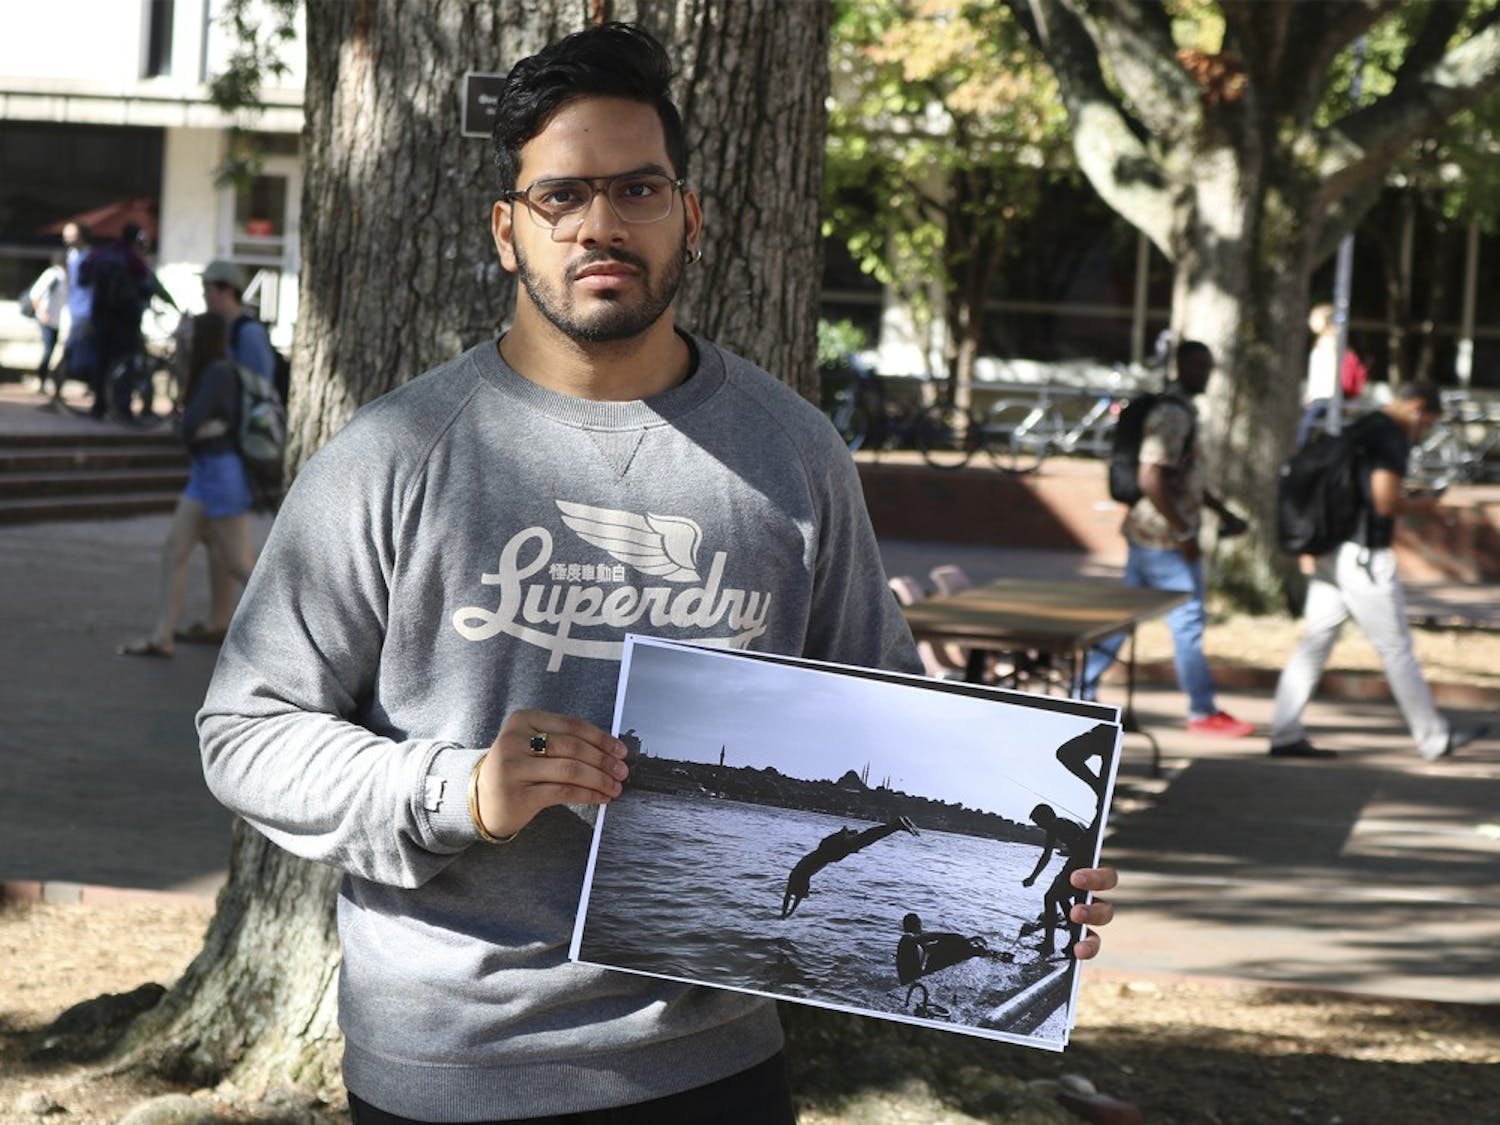 Arpan Bhandari, a religious studies and political science major,  displaying one of his photographs that are up for sale to raise money for syrian refugees. UN Refugee Agency